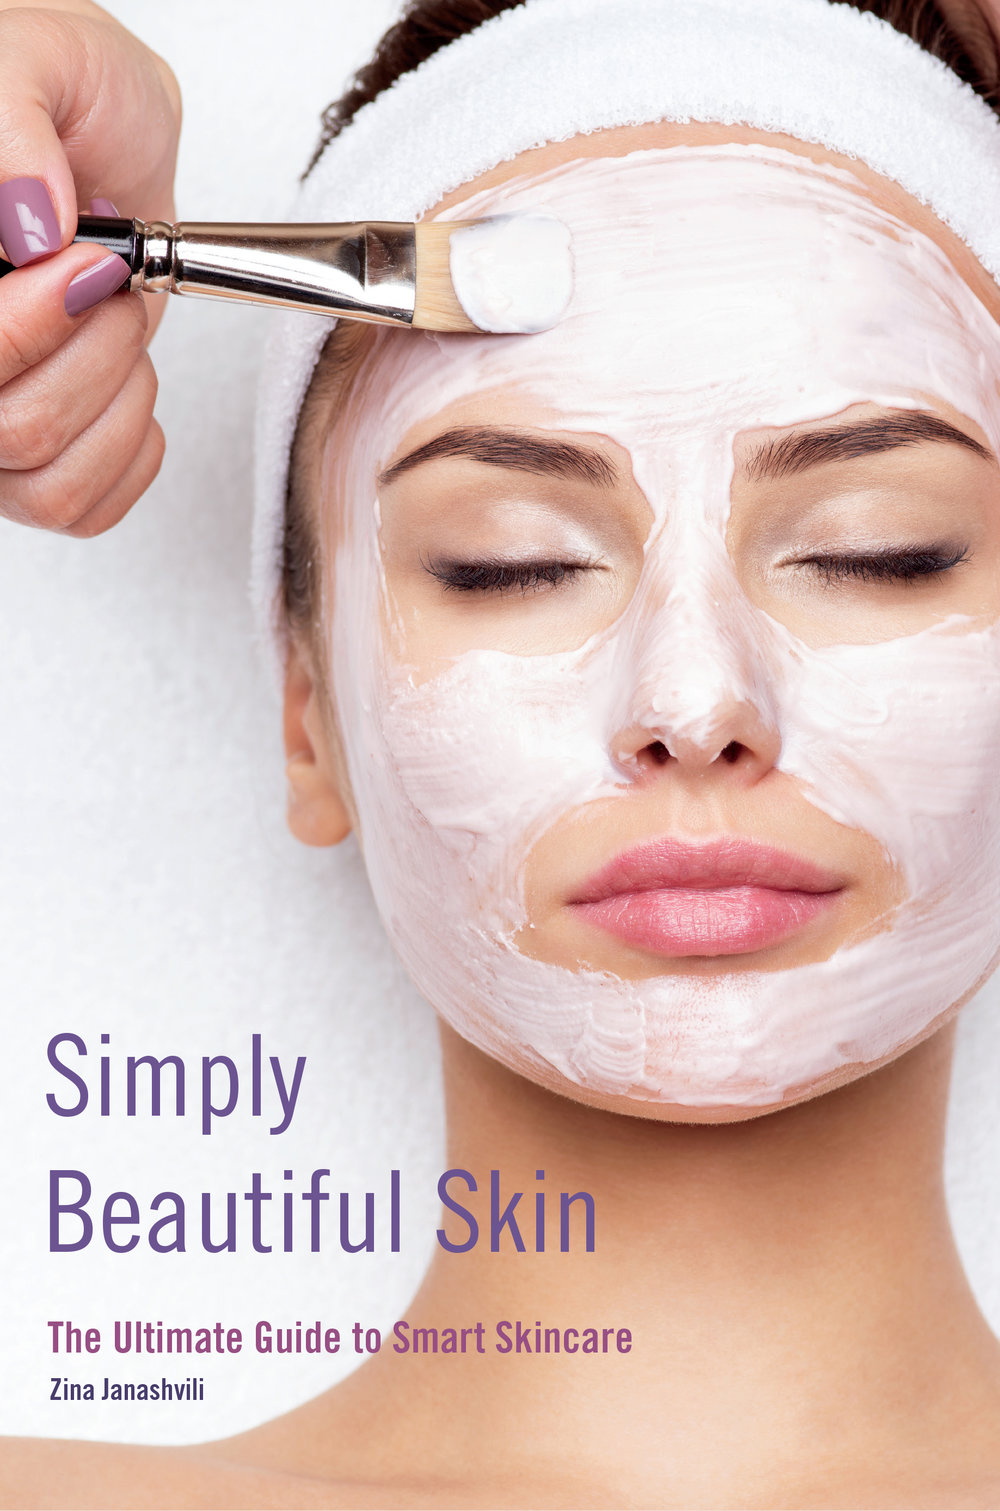 Simply Beautiful Skin Cover - FINAL.jpg